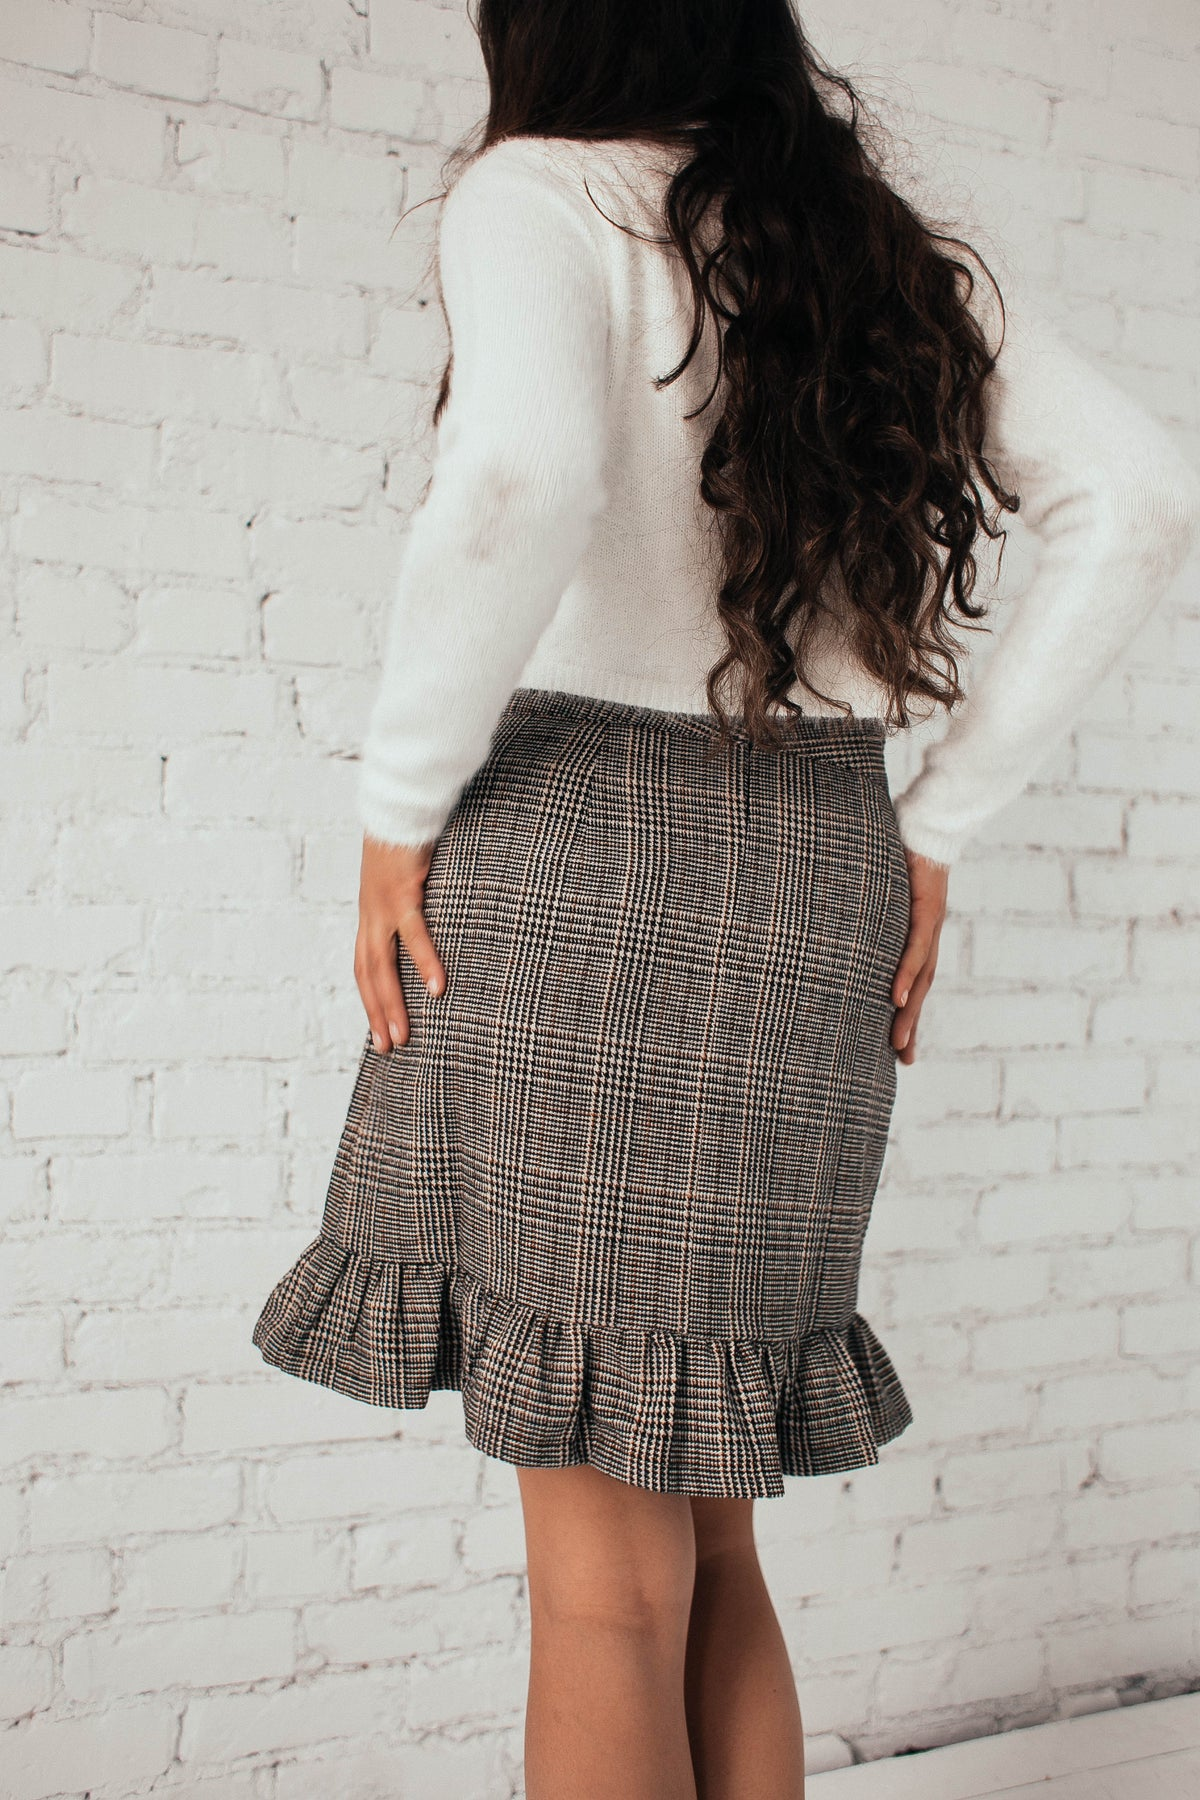 Lou Lou Plaid Skirt